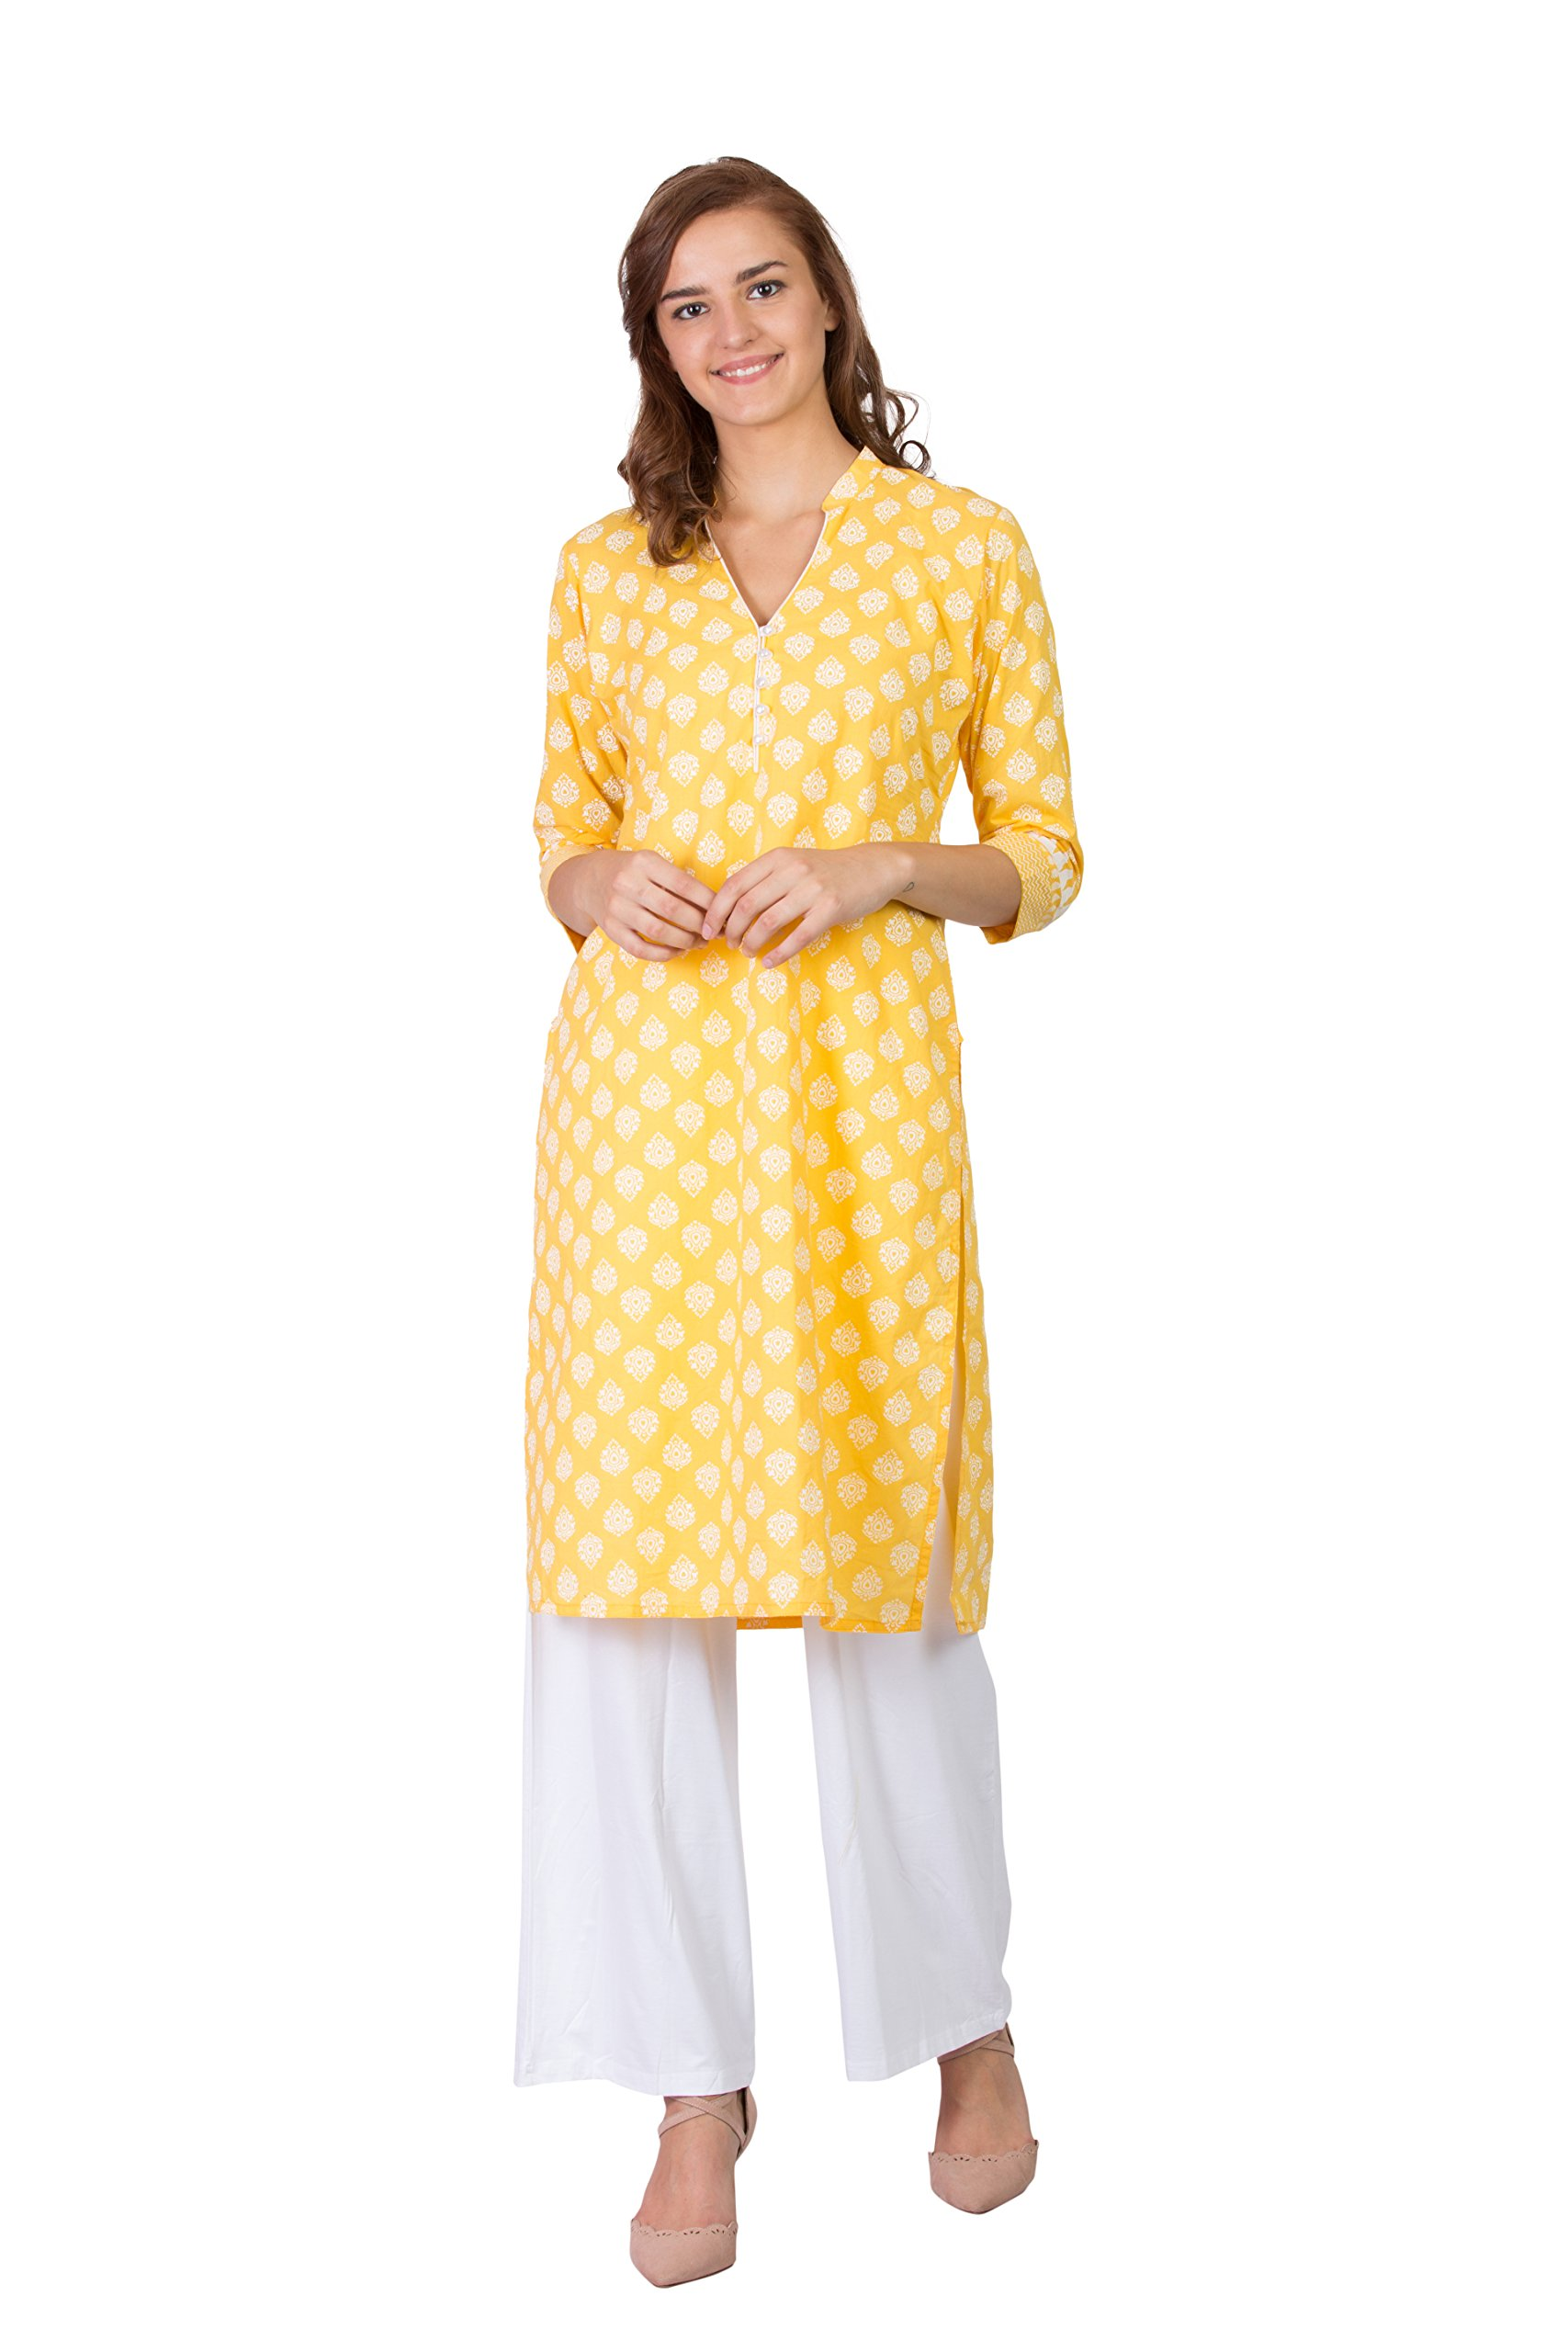 SABHYATA Women Kurta Designer Ethnic Long Dress Casual Tunic Kurti for Women Ladies Partywear Material 100% Pure Cotton Chinese Collar X-Large Yellow